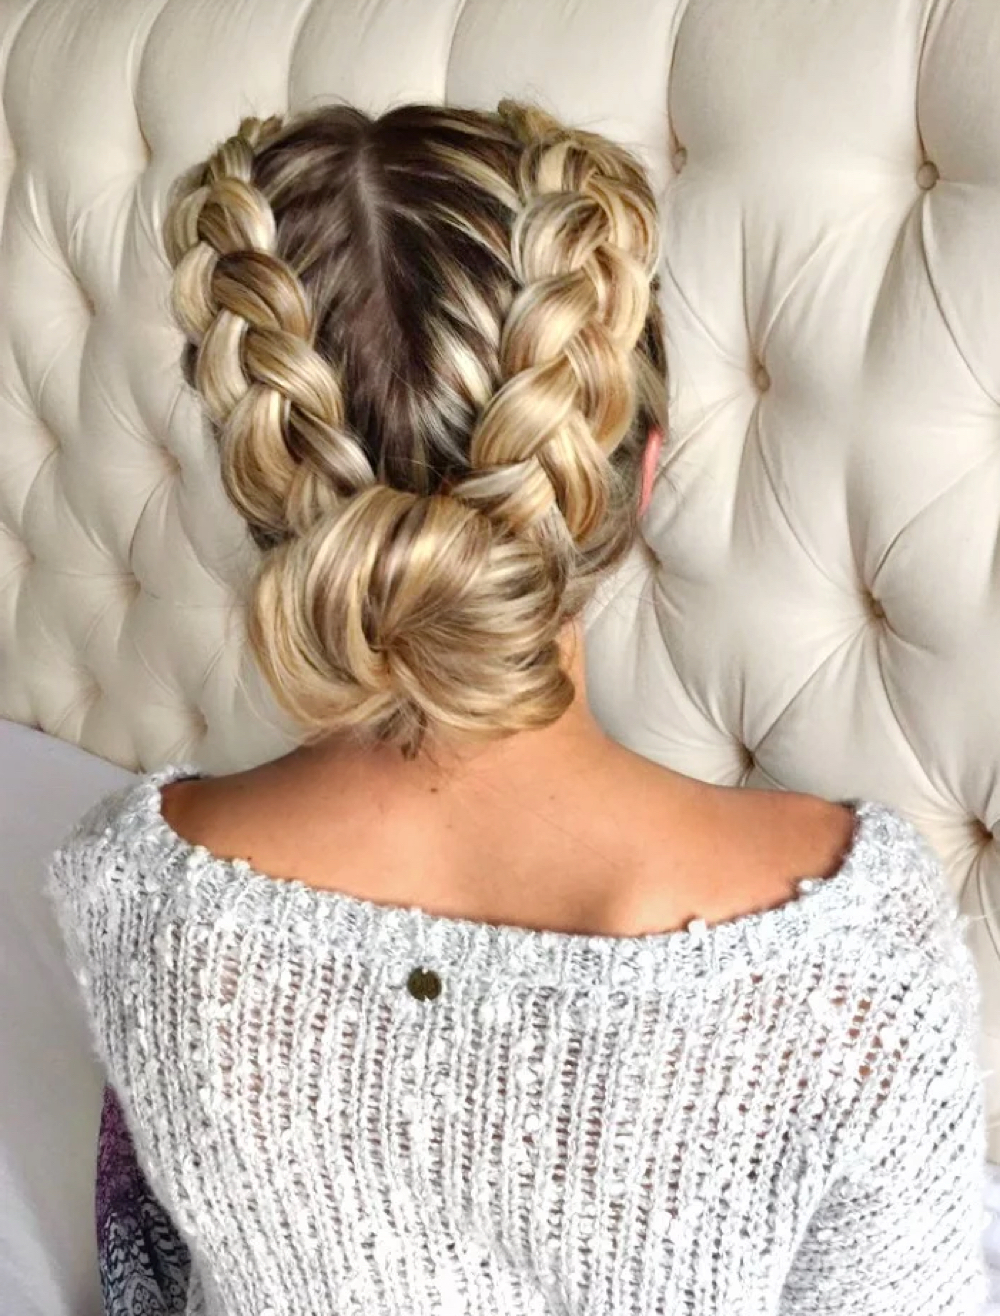 Most Popular Mini Braided Buns Updo Hairstyles Intended For 29 Gorgeous Braided Updo Ideas For (View 20 of 20)